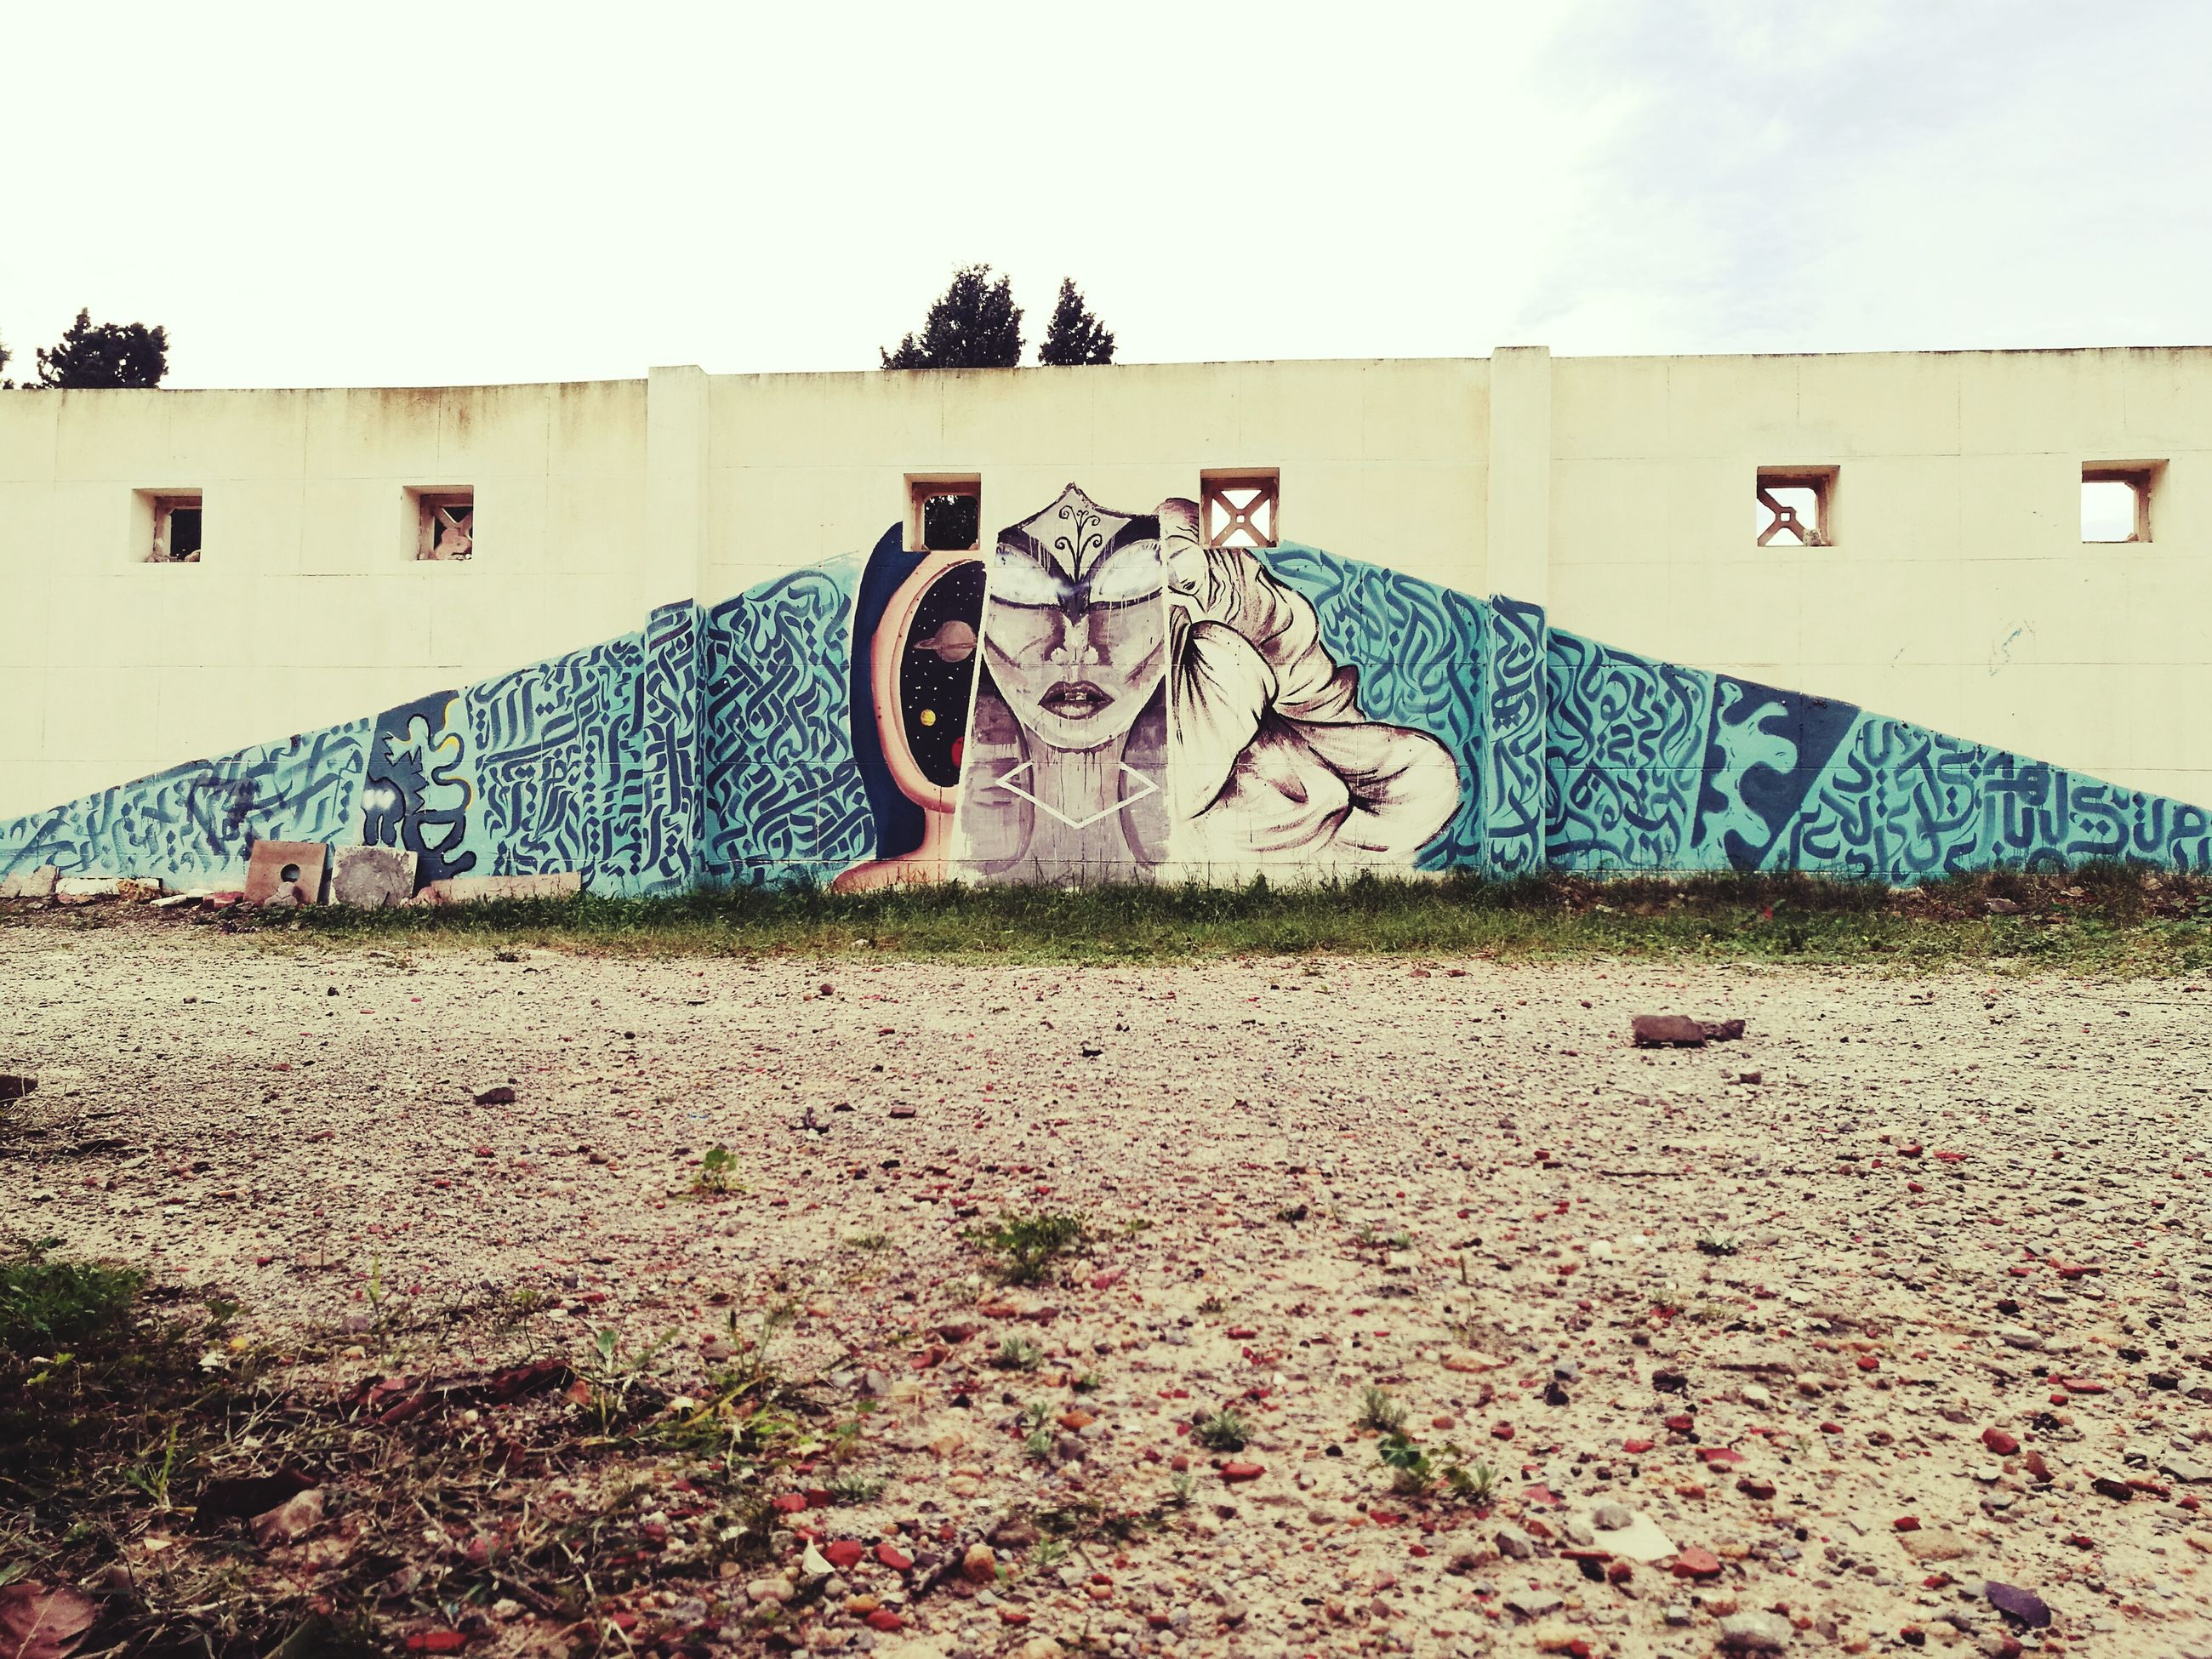 graffiti, creativity, text, day, built structure, sky, no people, outdoors, architecture